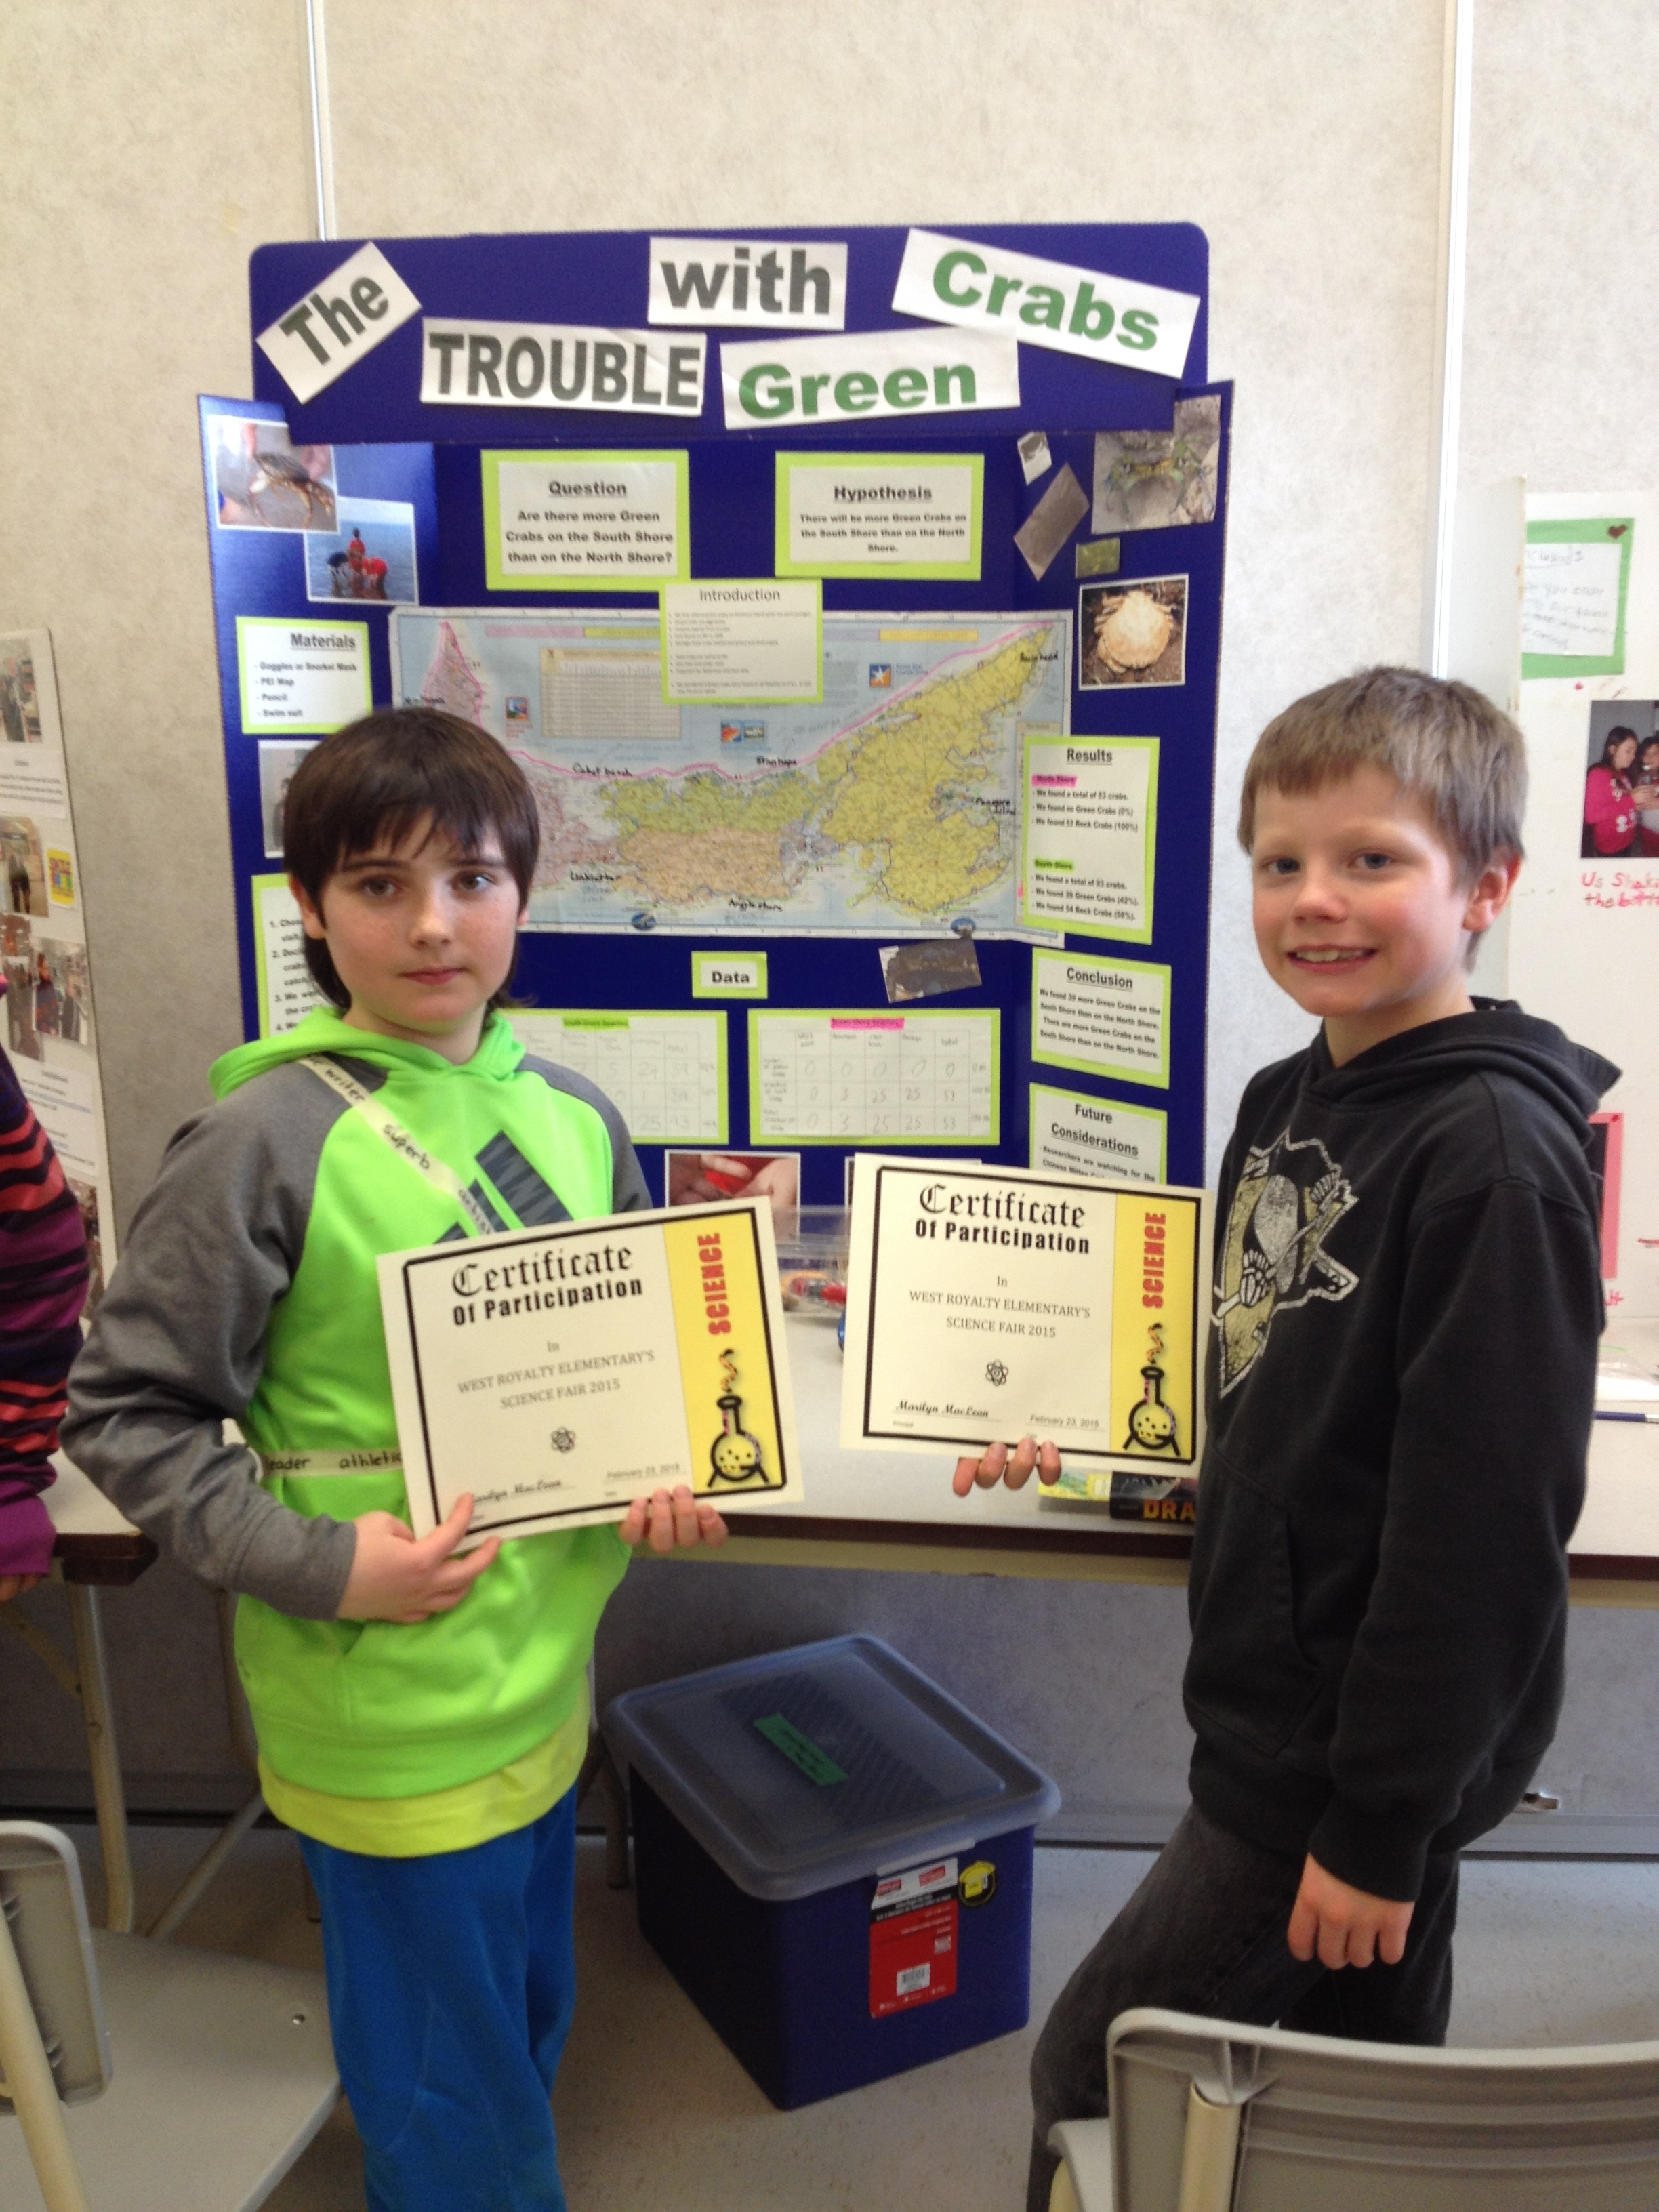 About the Authors - Liam and Liam both attended West Royalty Elementary school at the time of completing the project. They both now attend Queen Charlotte Junior High School and started grade 8 in the Fall of 2018. They love sports, music and still enjoy hunting for crabs.